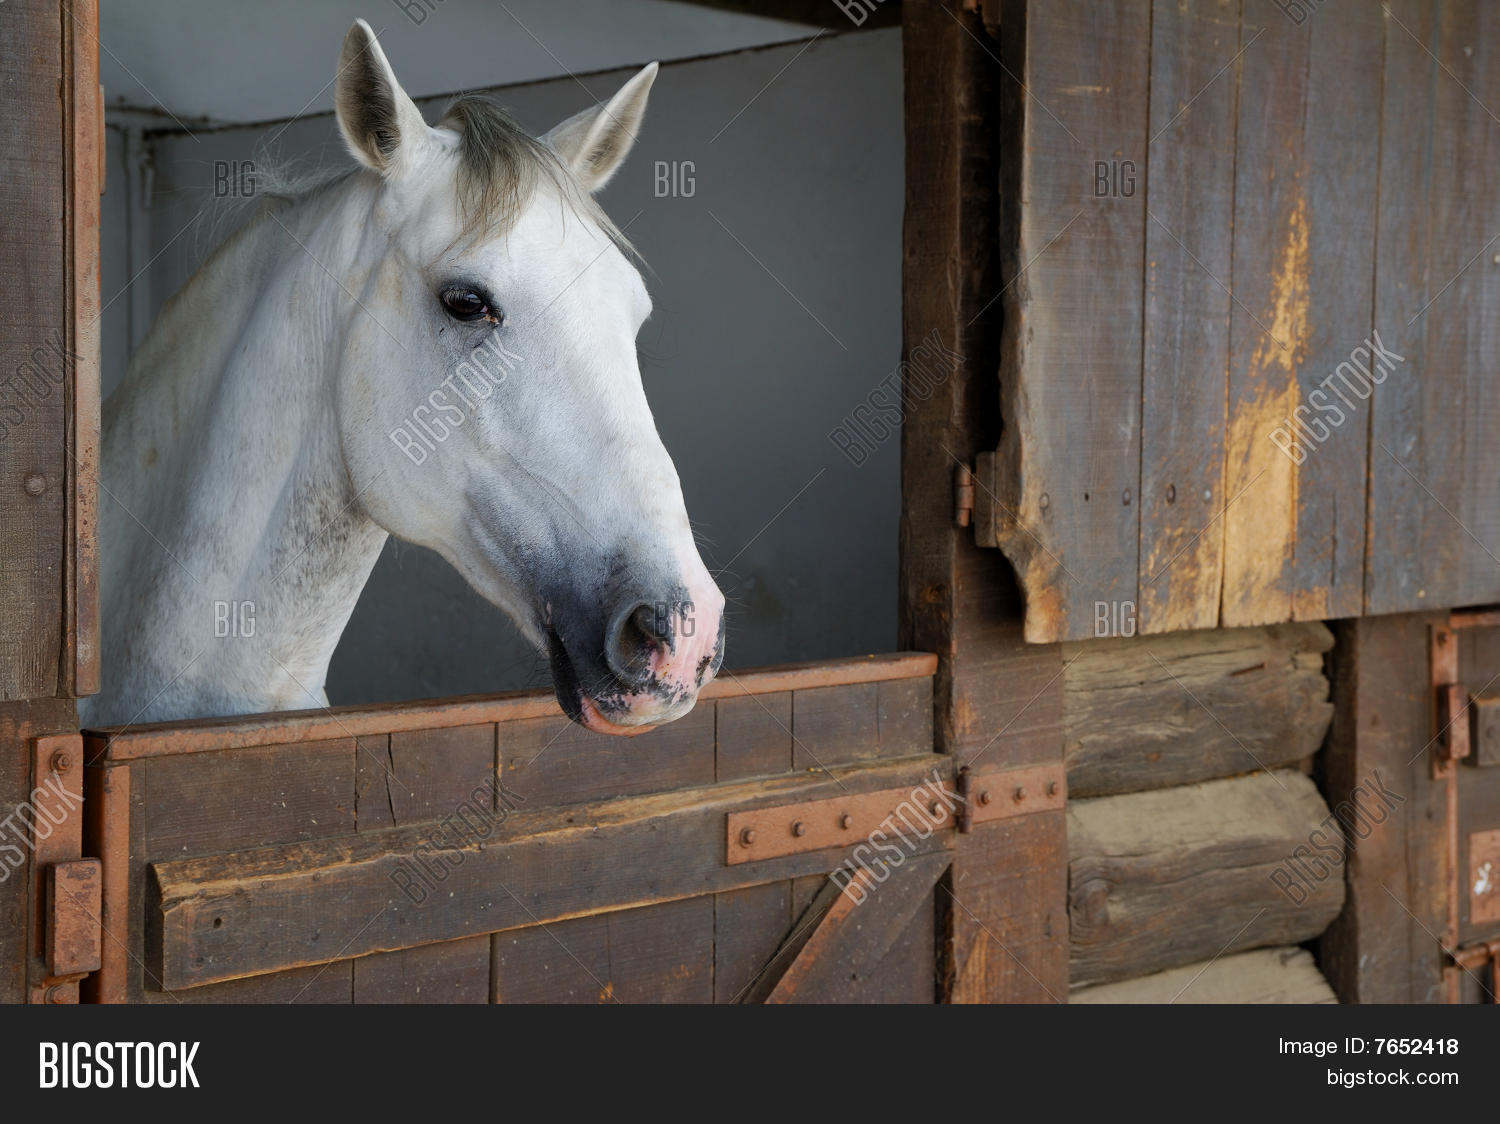 Horse Stable Image Photo Free Trial Bigstock